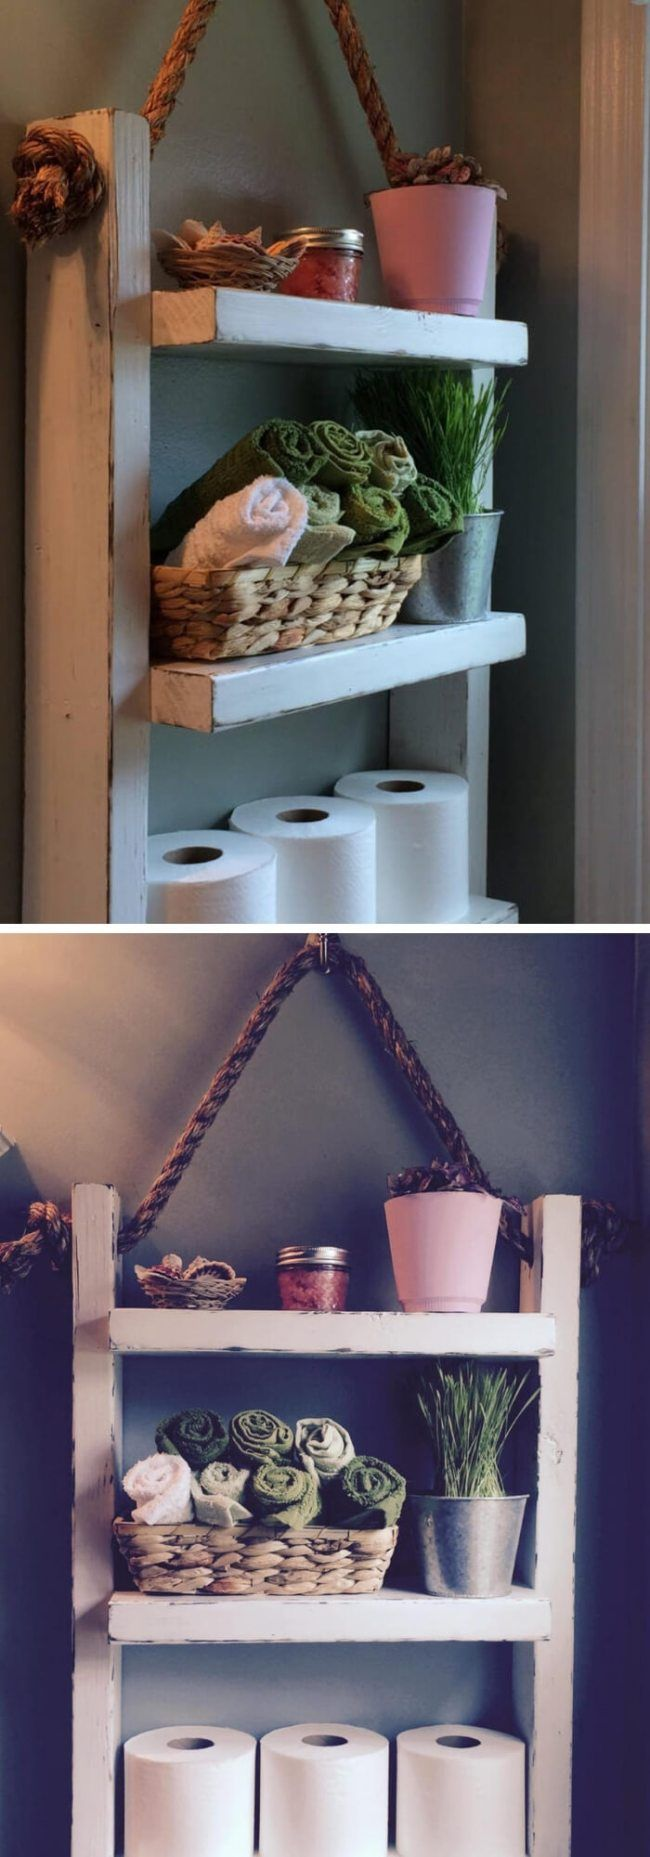 23+ Stunning Over the Toilet Storage Ideas & Designs For 2019   – Bathroom